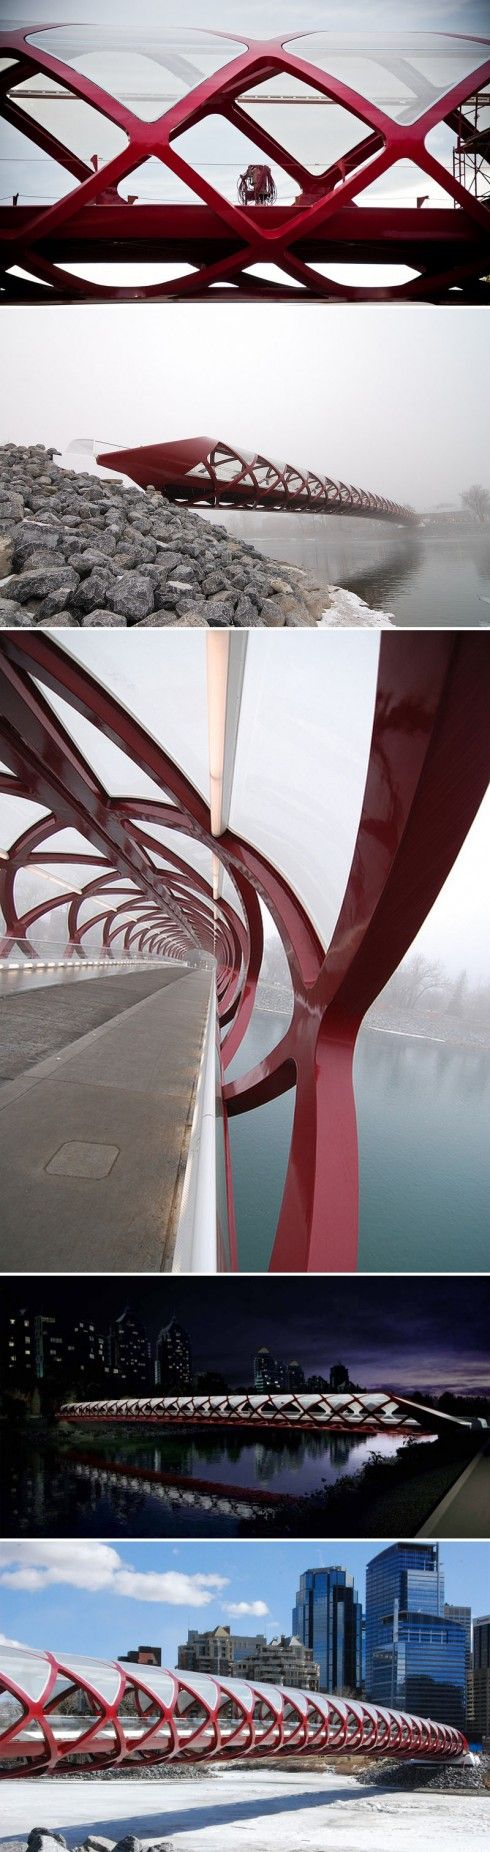 Santiago Calatrava's Peace Bridge    (Calgary, Canada). This was not in Calgary yet when we visited it, but I think it's great!